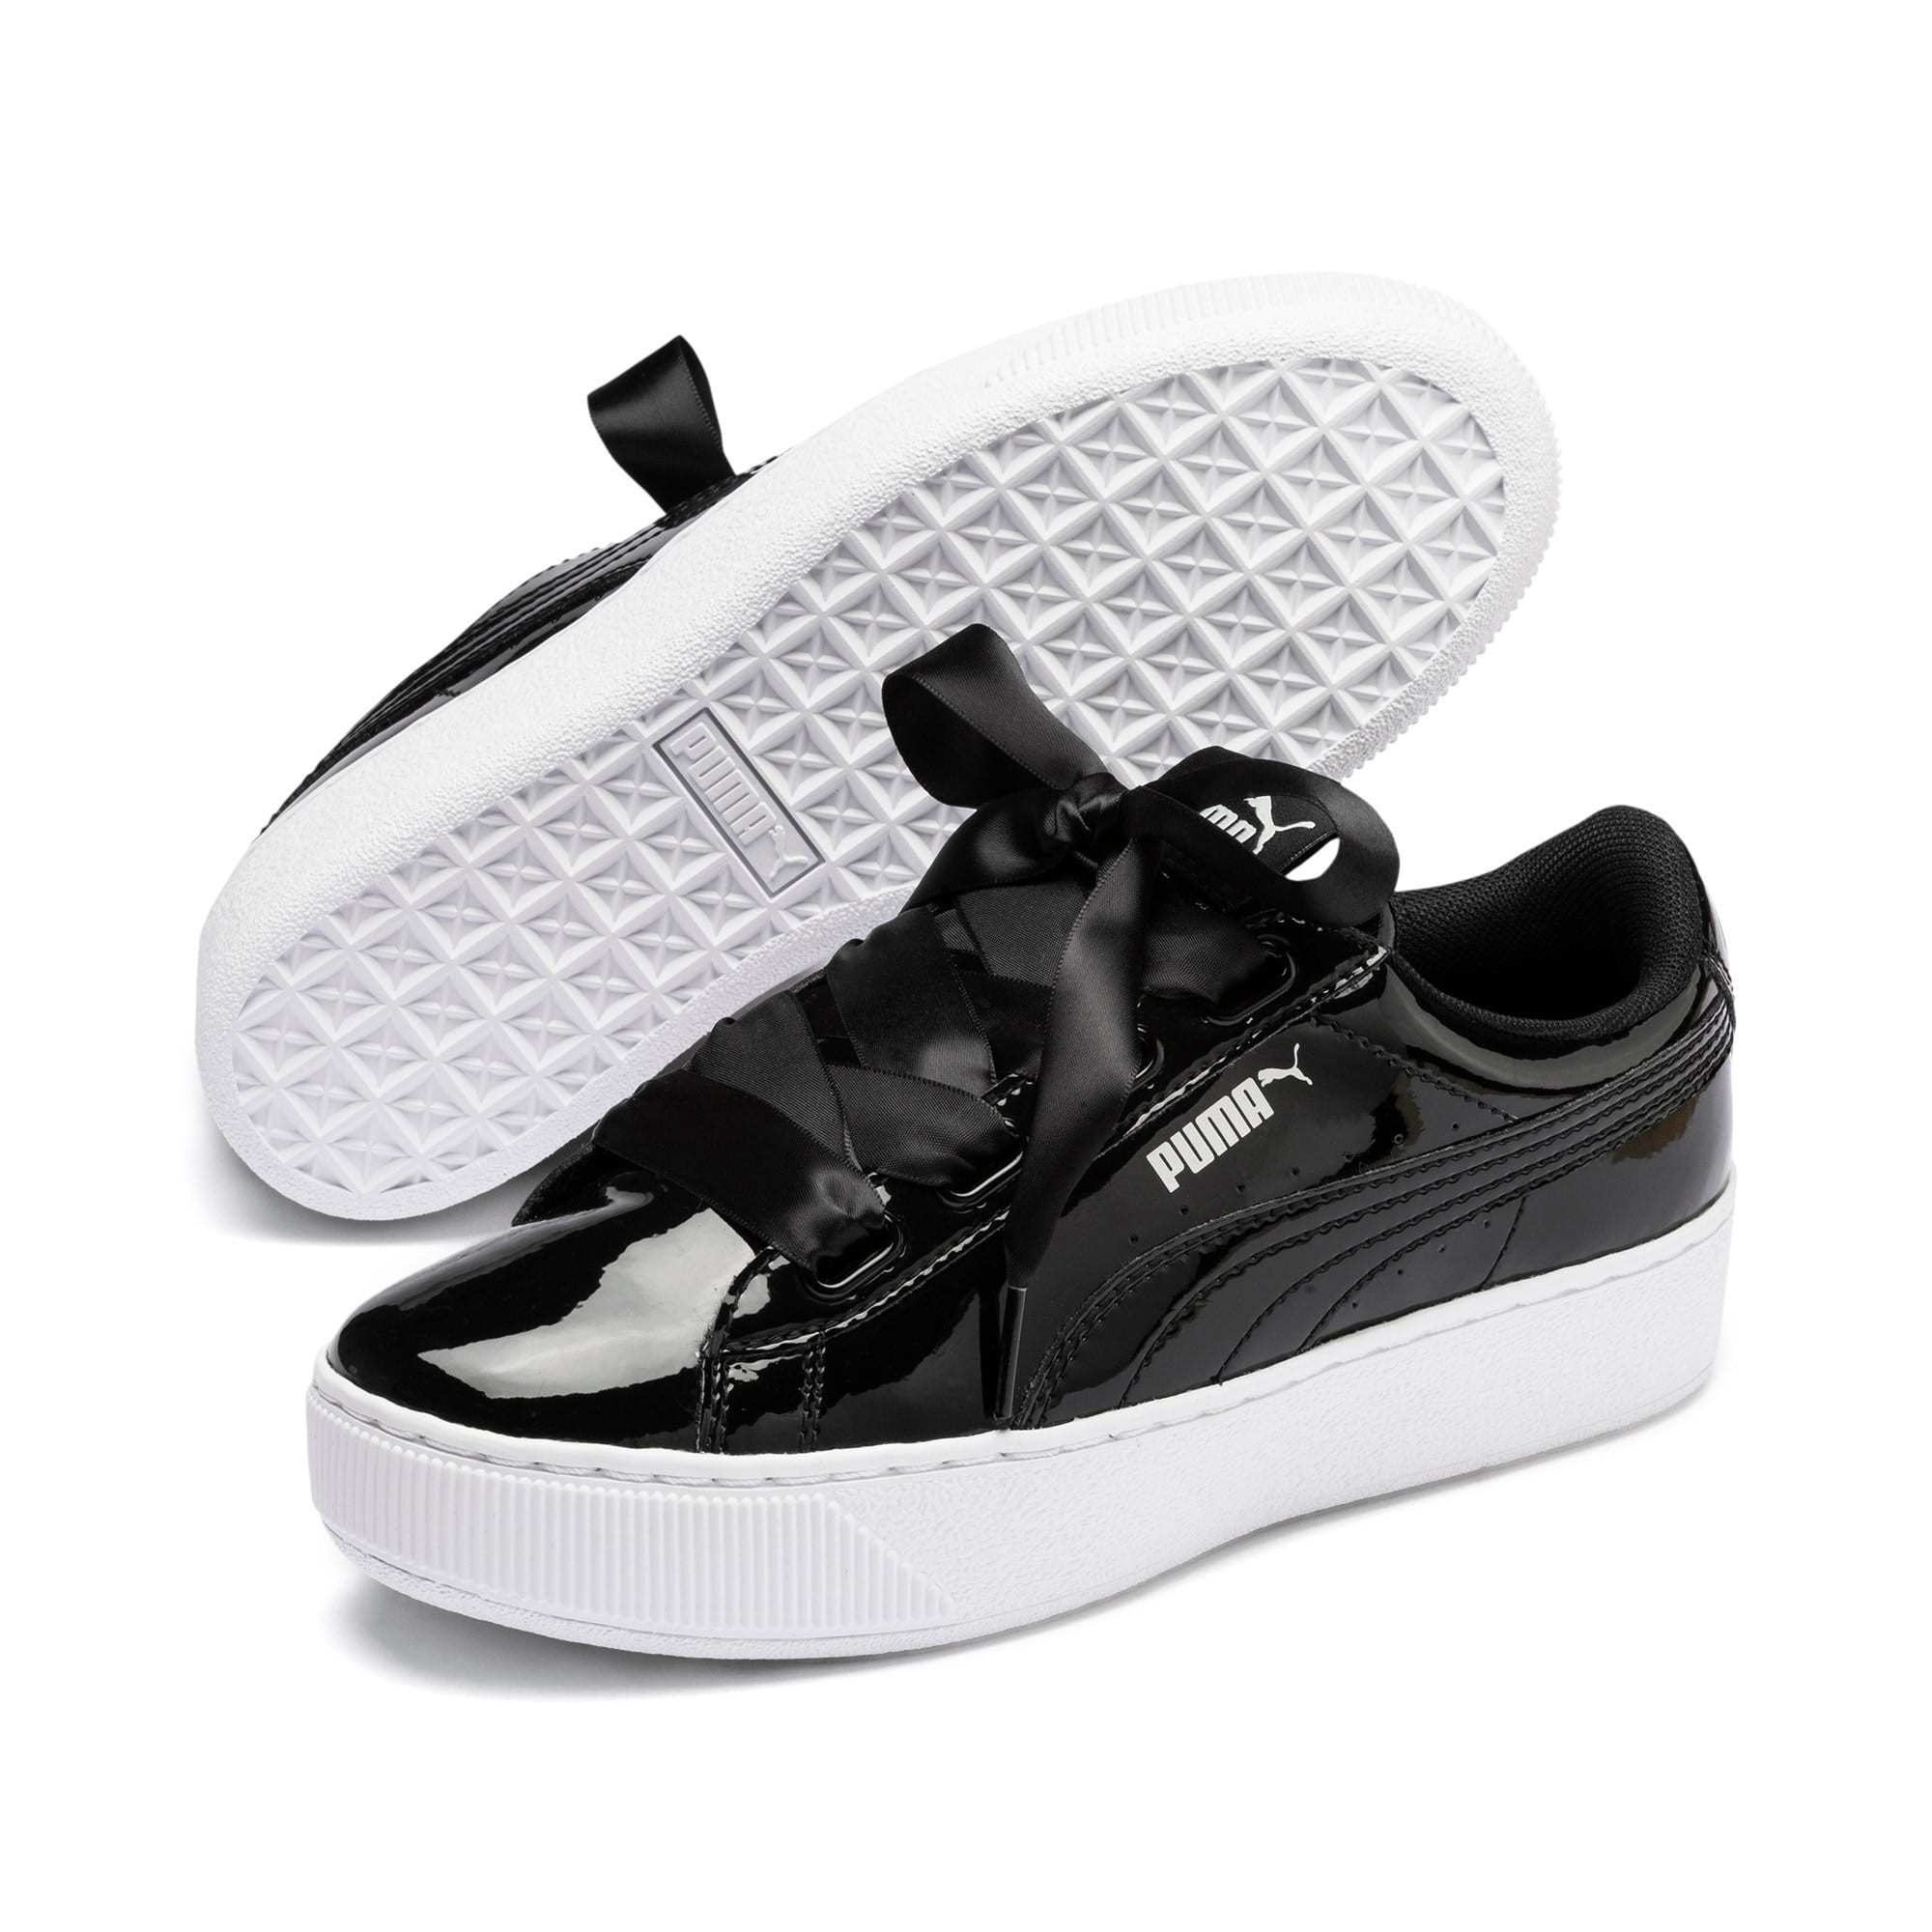 Thumbnail 2 of Vikky Platform Ribbon Patent Girls' Trainers, Puma Black-Puma Black, medium